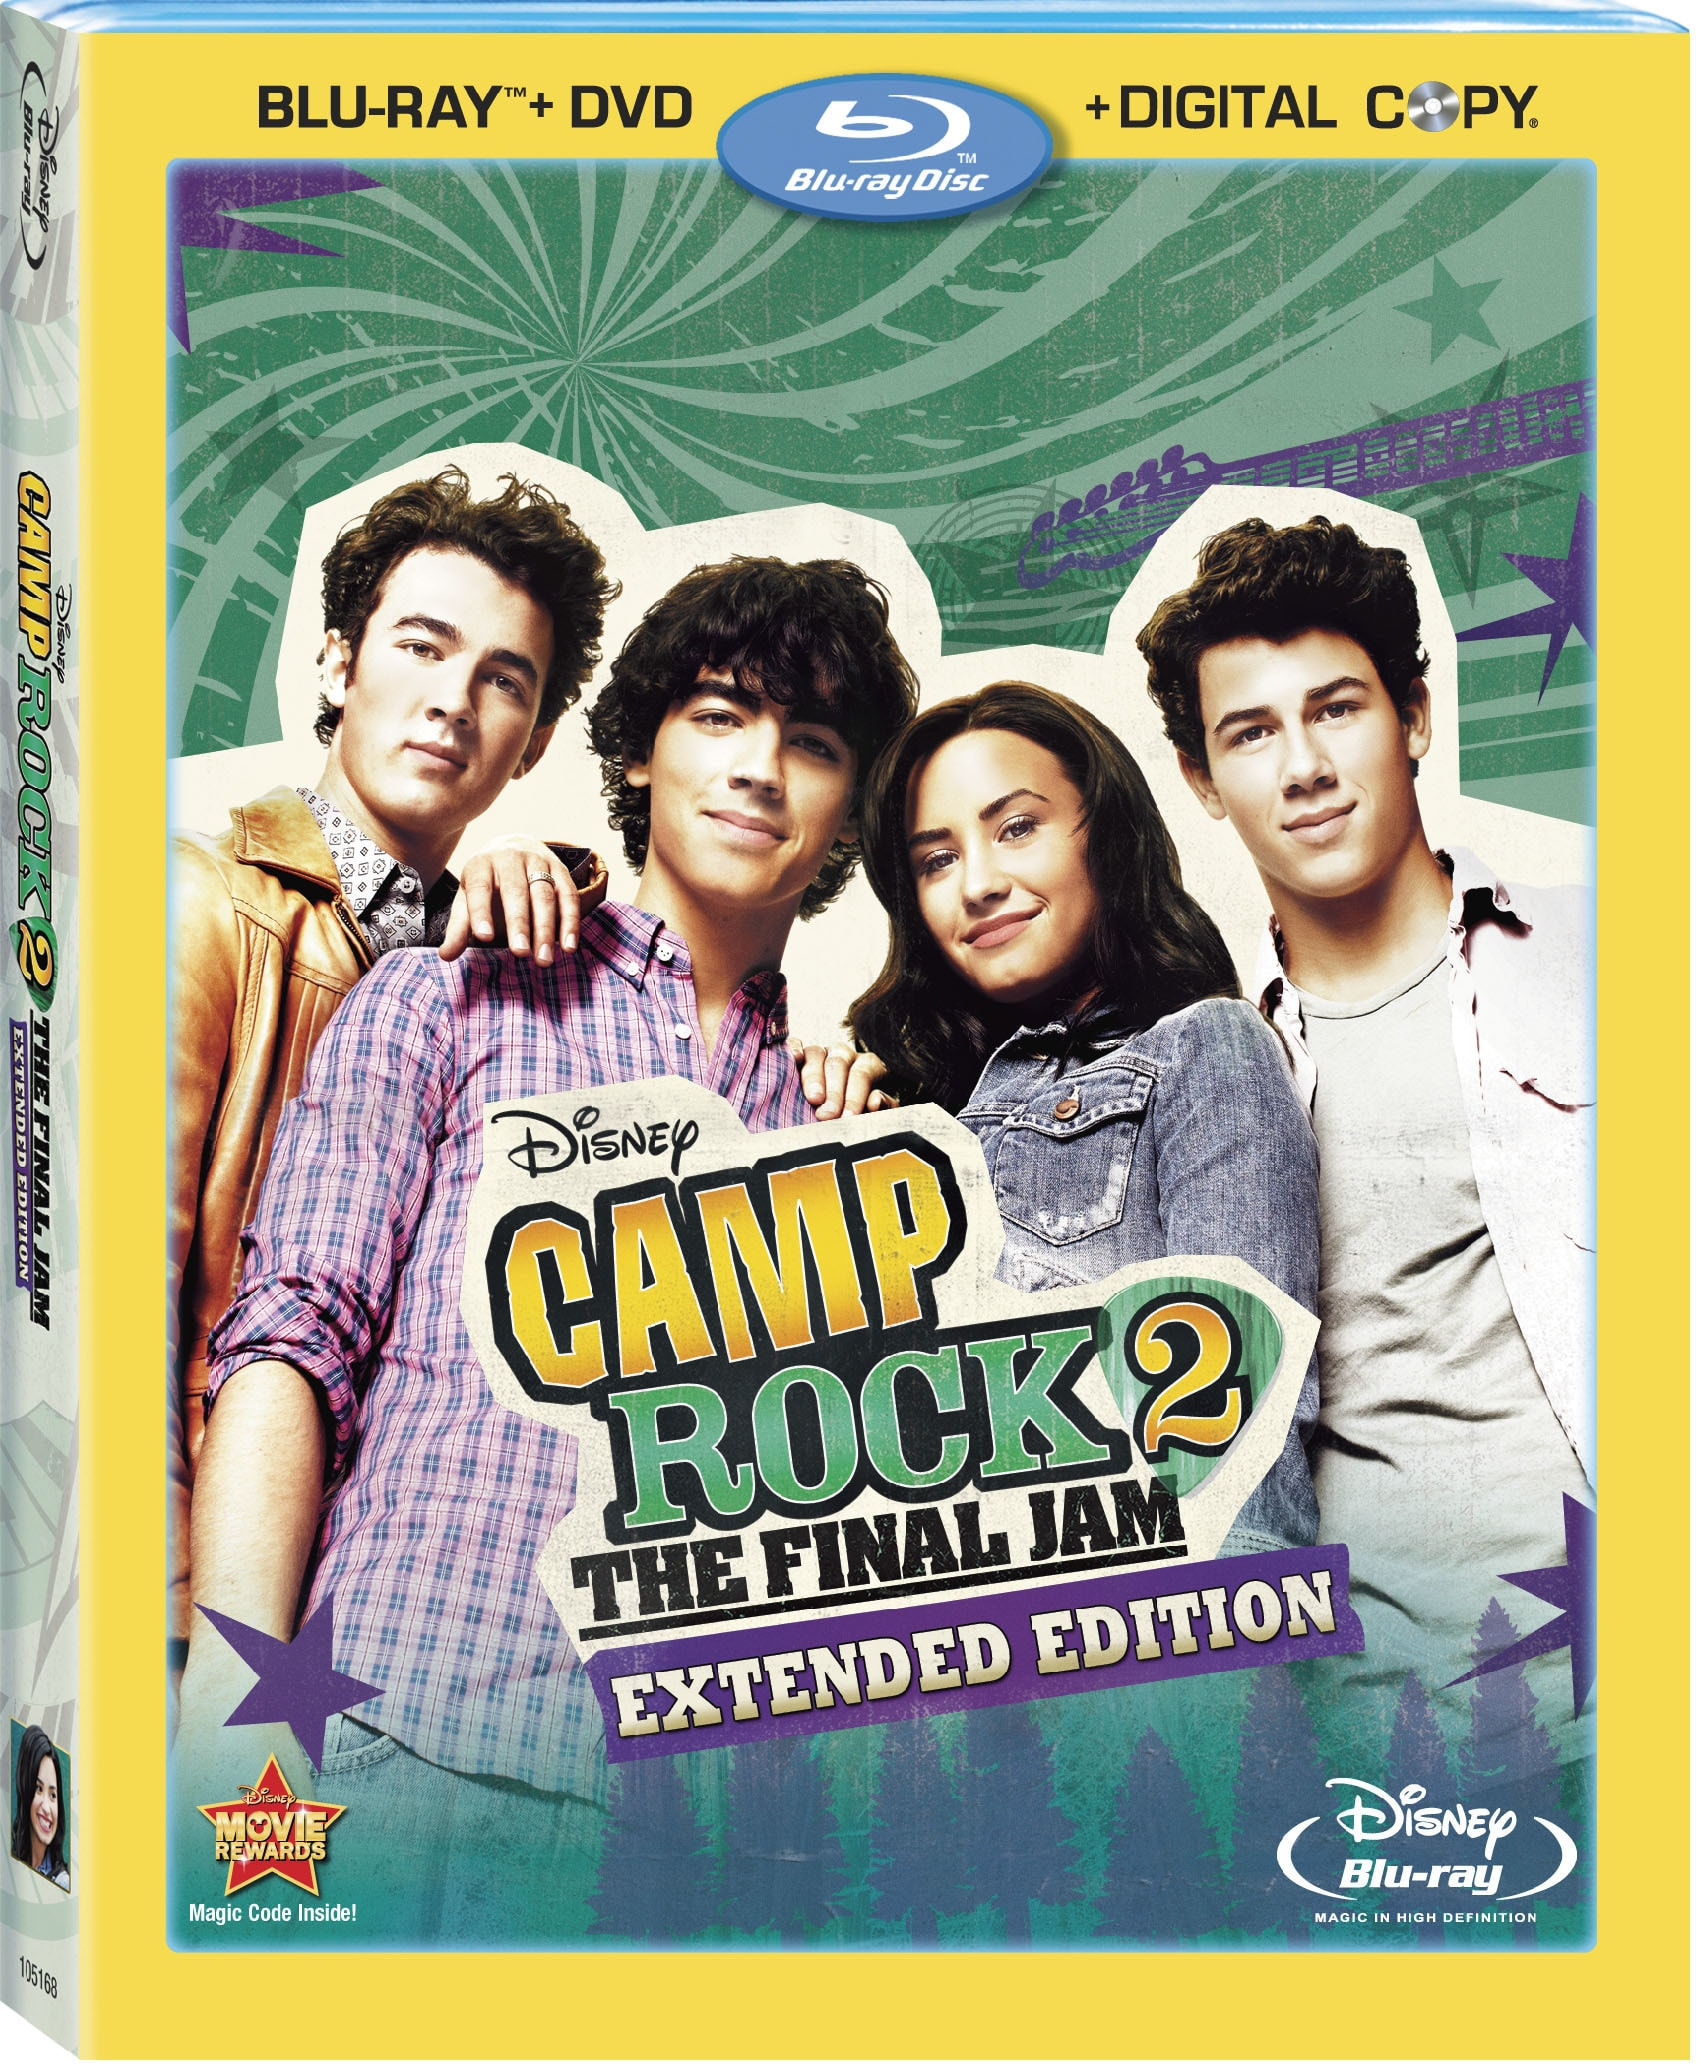 Extended Edition 3-Disc Blu-ray/DVD Combo + Digital Copy